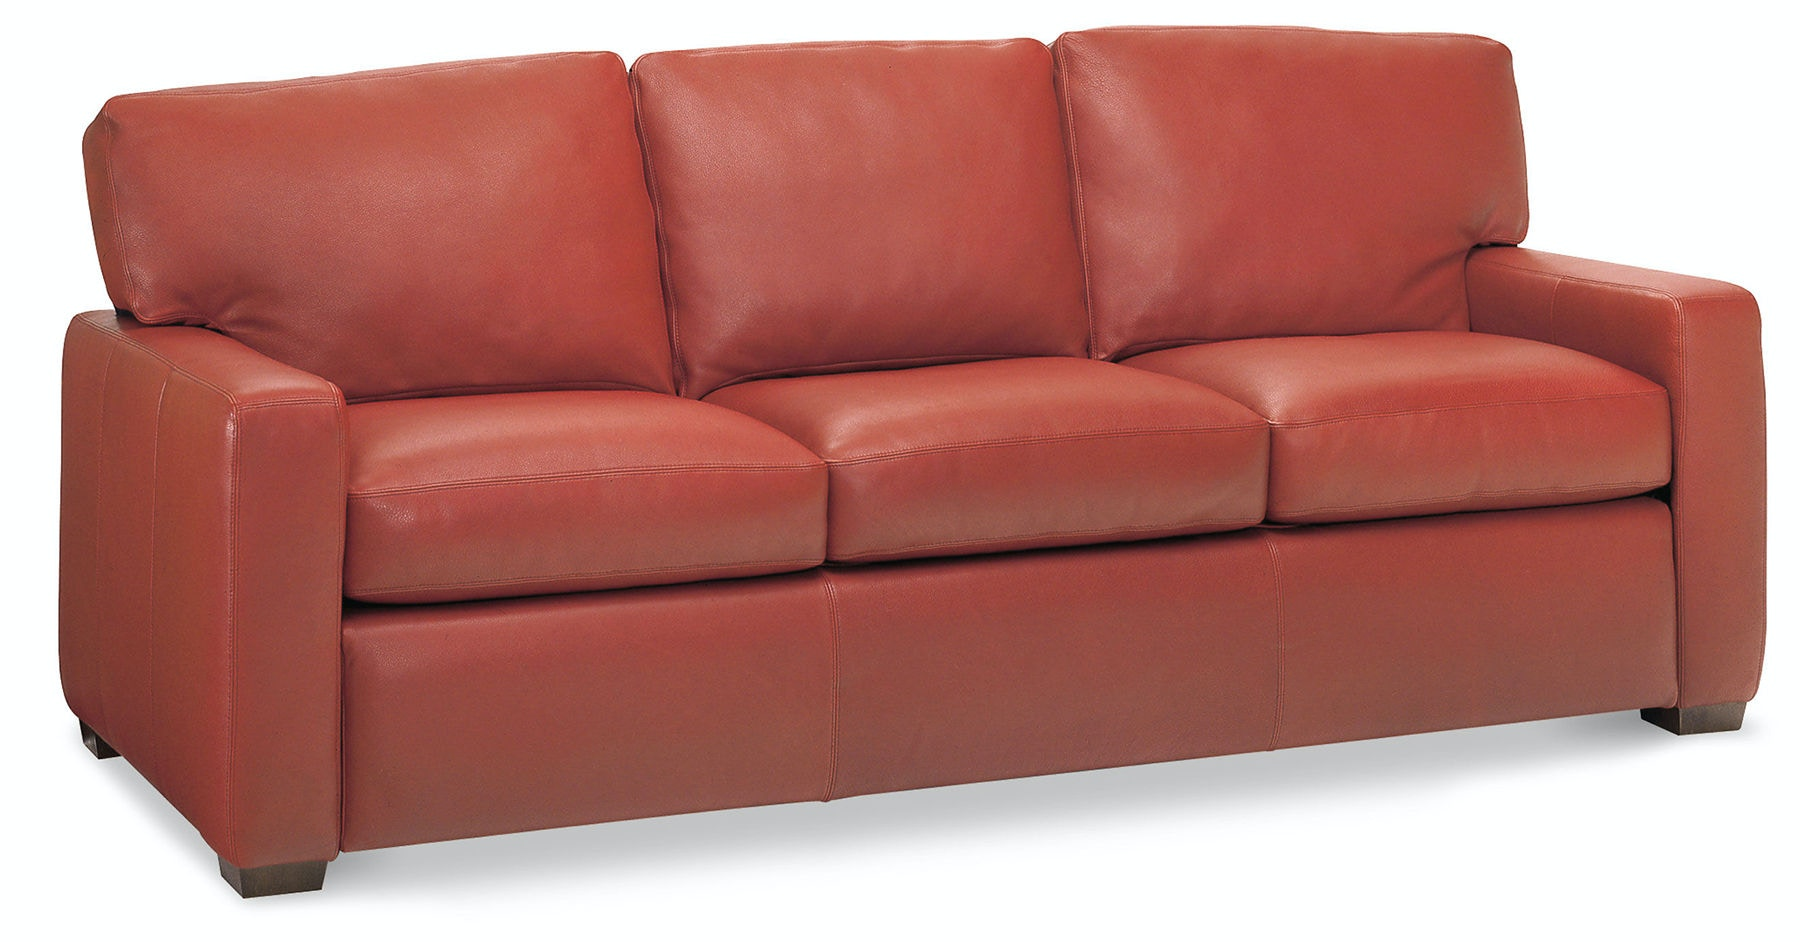 american leather sofa csnso3st